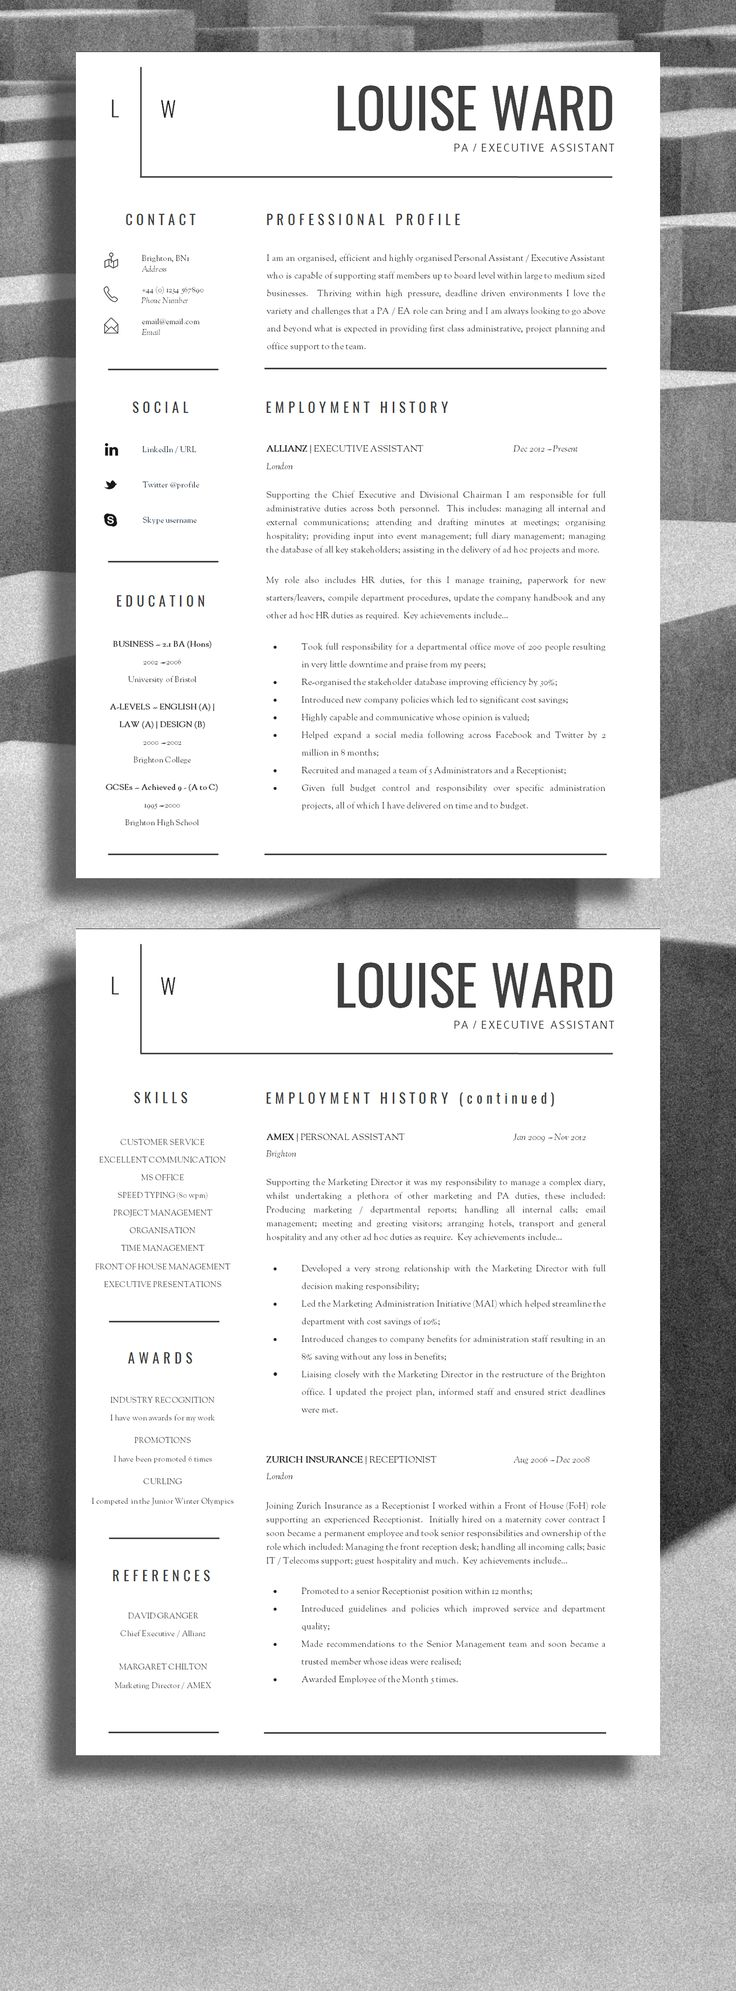 professional resume design professional cv design be professional and get more interviews career